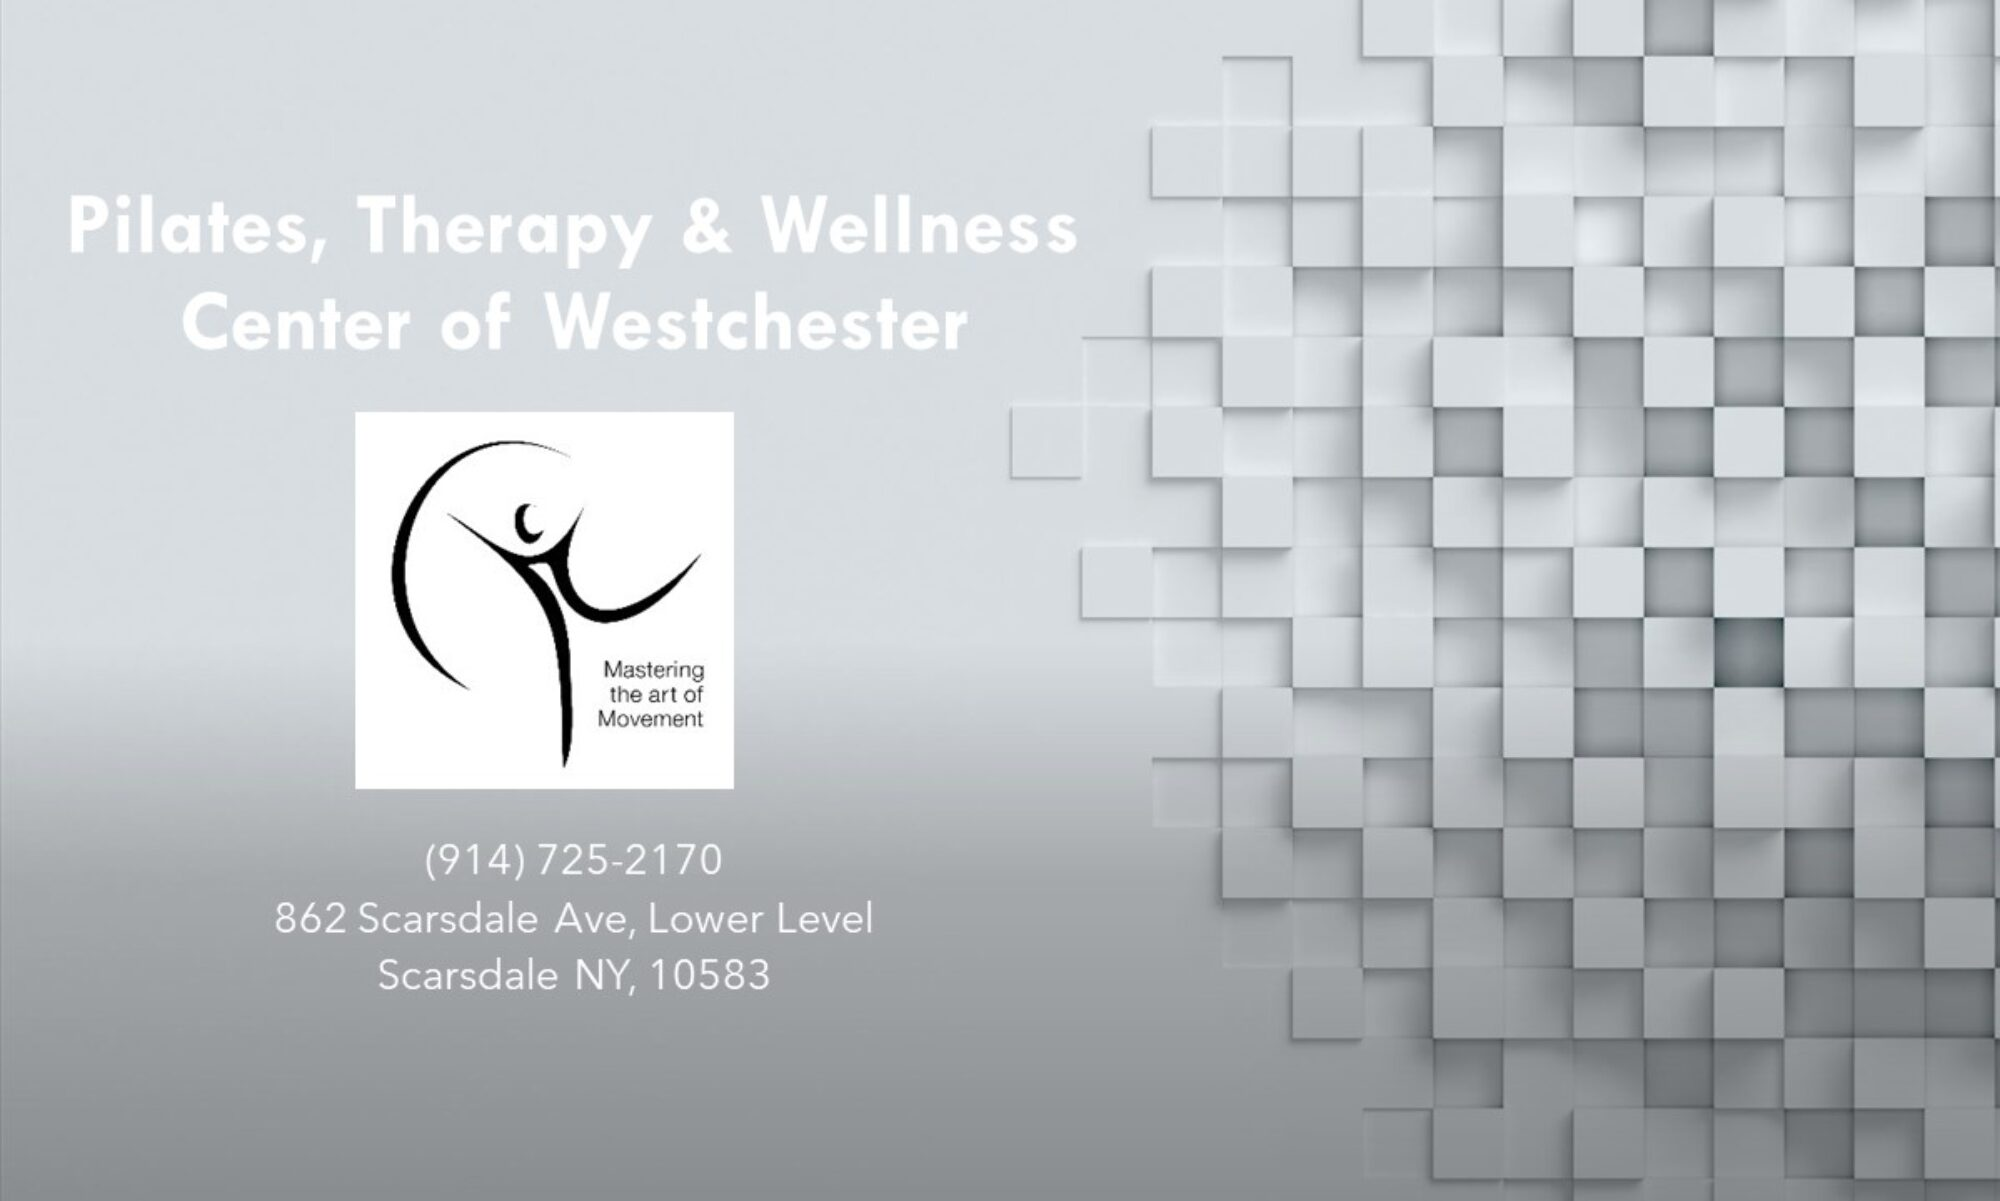 Pilates, Physical Therapy and Wellness Center